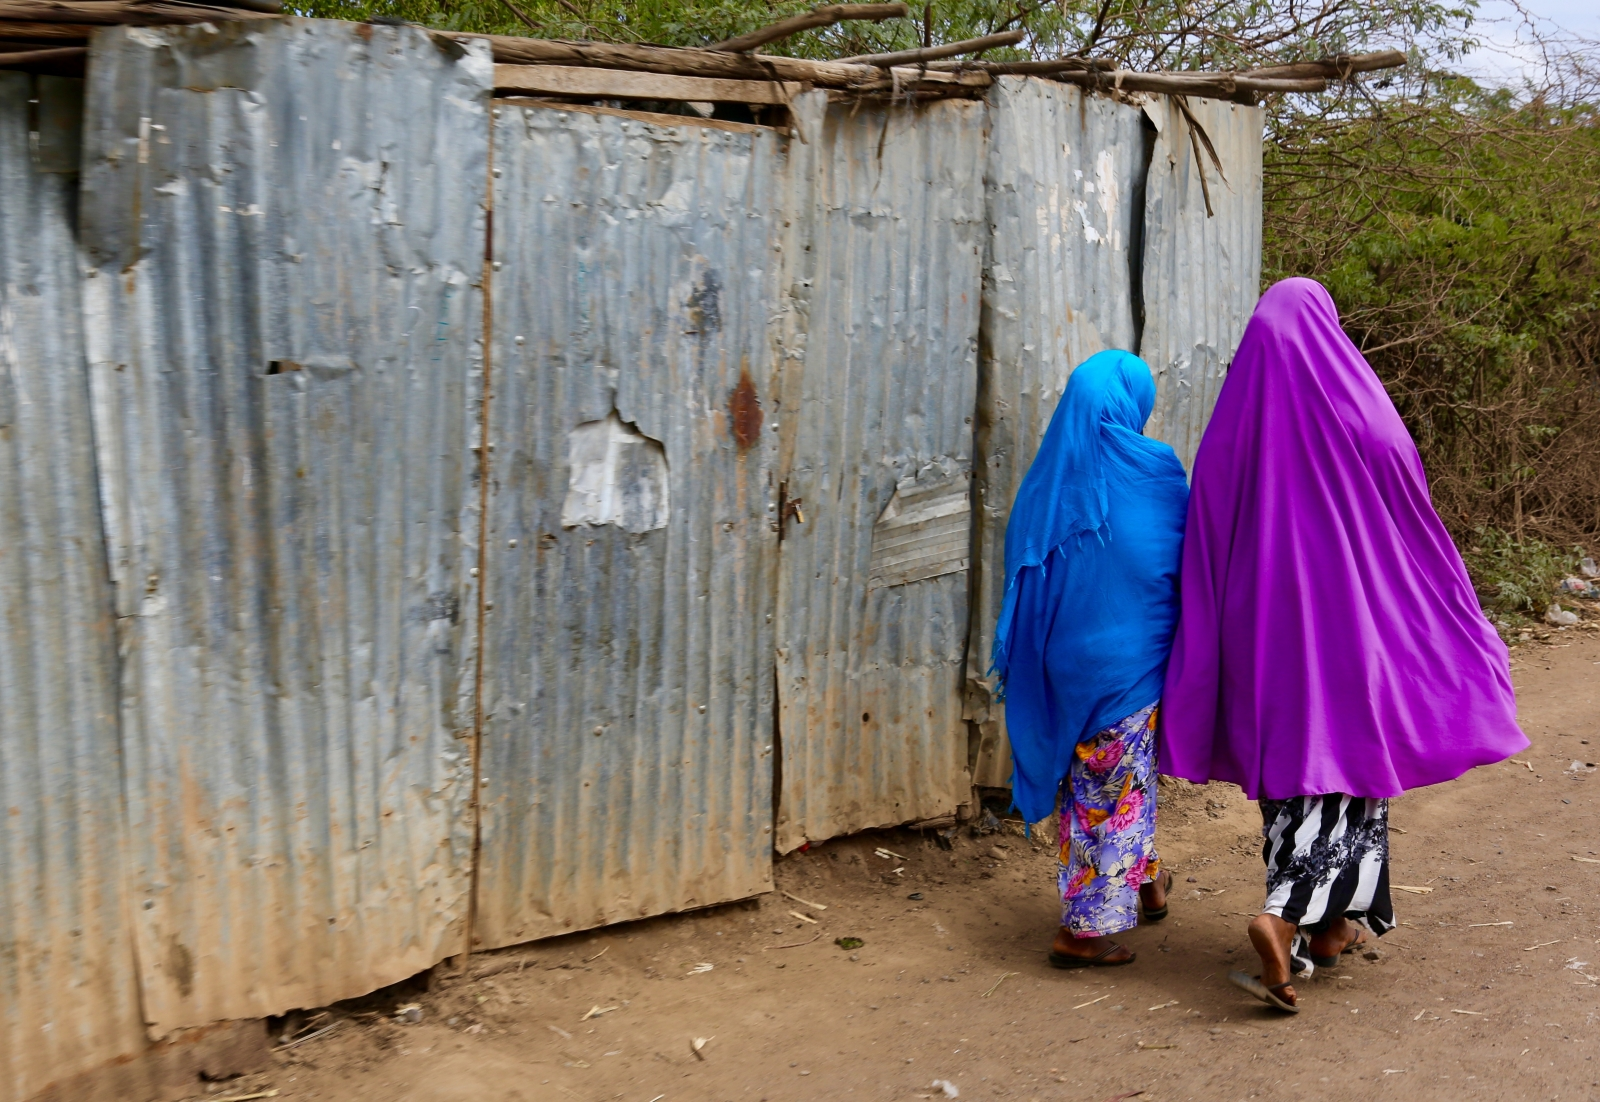 Somali refugees in Kenya